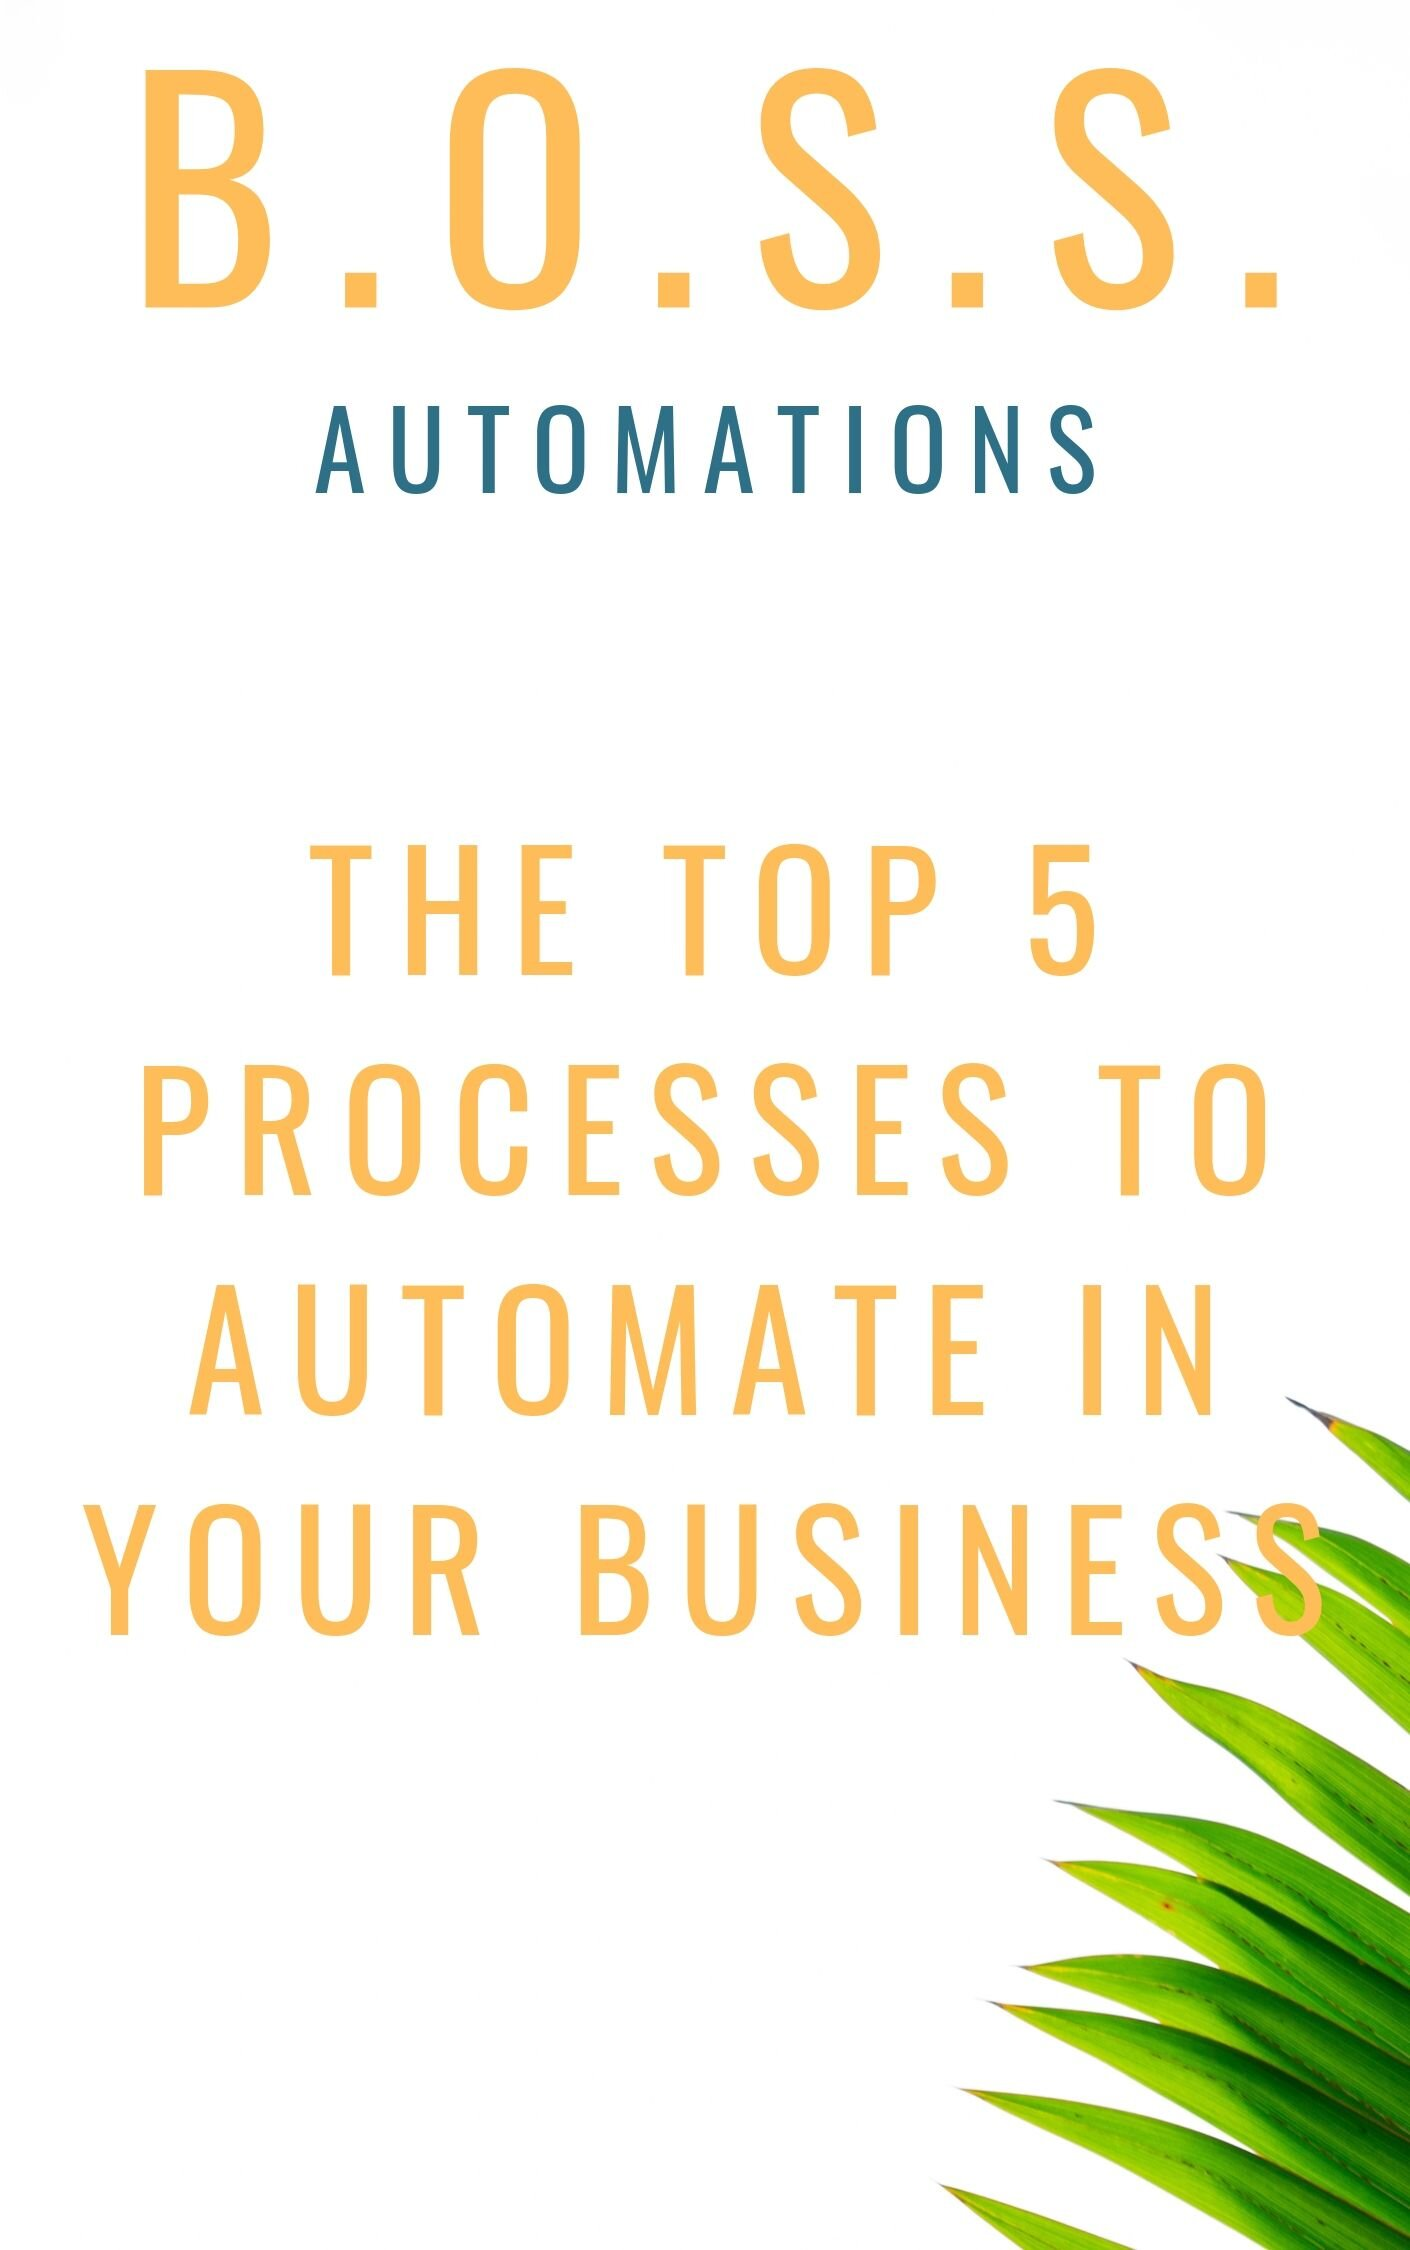 Get started with Automation - Top 5 ways to automate your business